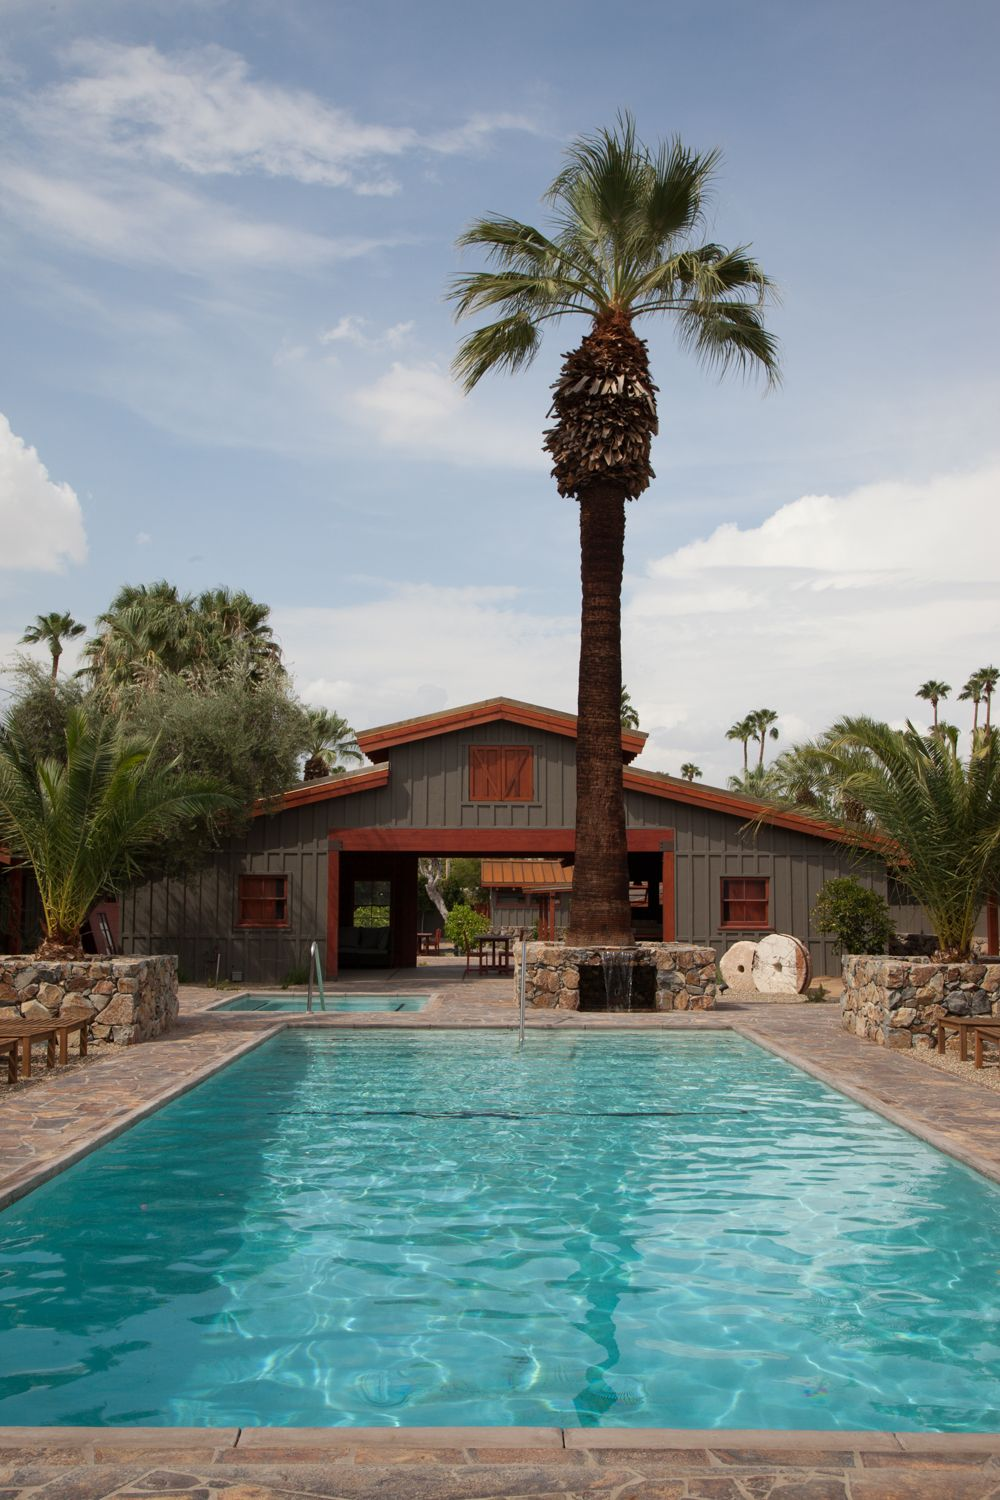 Enjoy a relaxing stay at The Sparrows hotel in Palm Springs, #California. Lounge by the saltwater pool, and hangout in the restored 1950s barn that is equipped with a bar serving California wines!